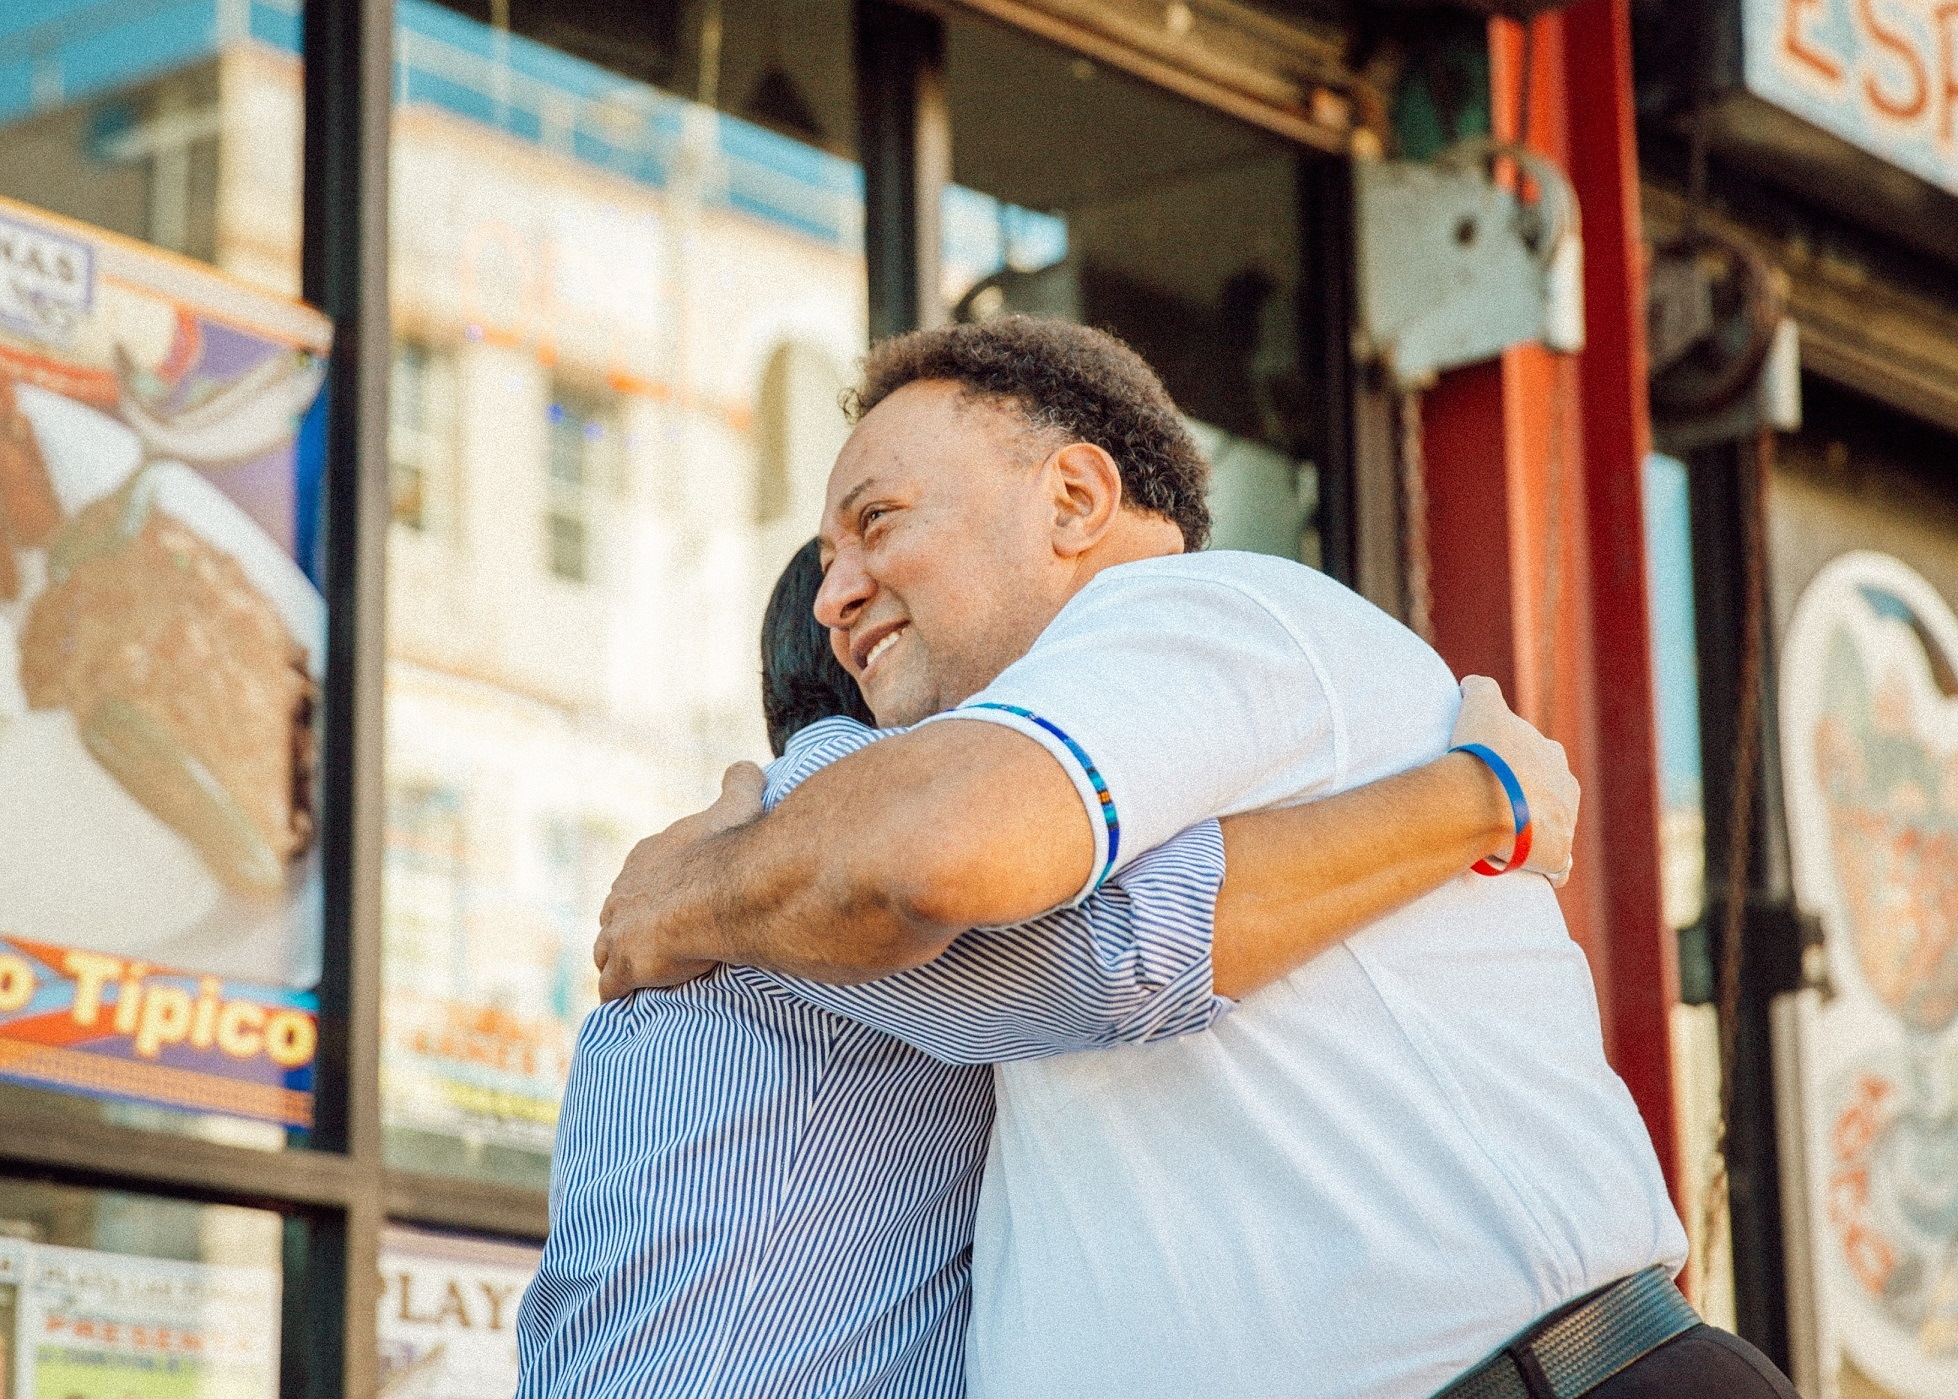 Camino financial, Community Letter: Let's Protect Minority Small Businesses & Eliminate Racial Injustice